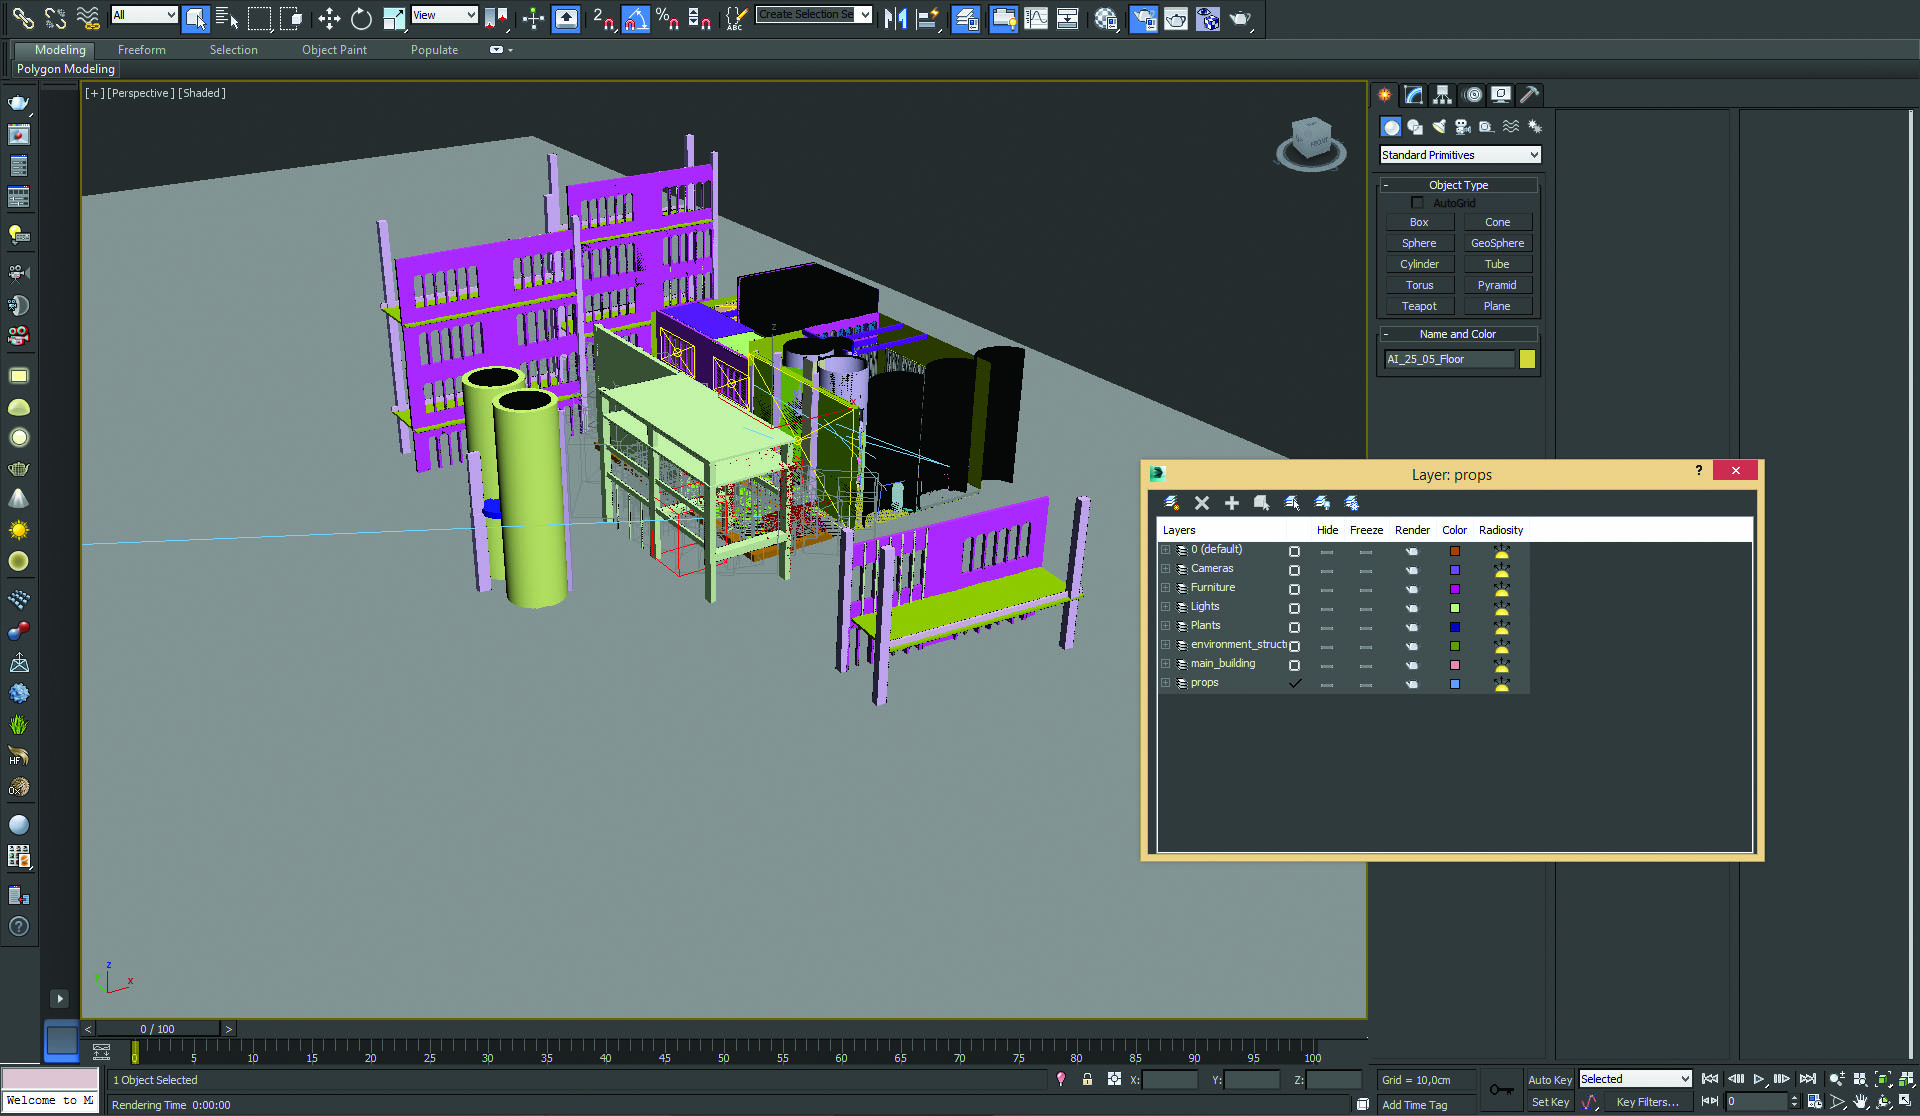 _0023_OVERVIEW_WITH_LAYERS.jpg